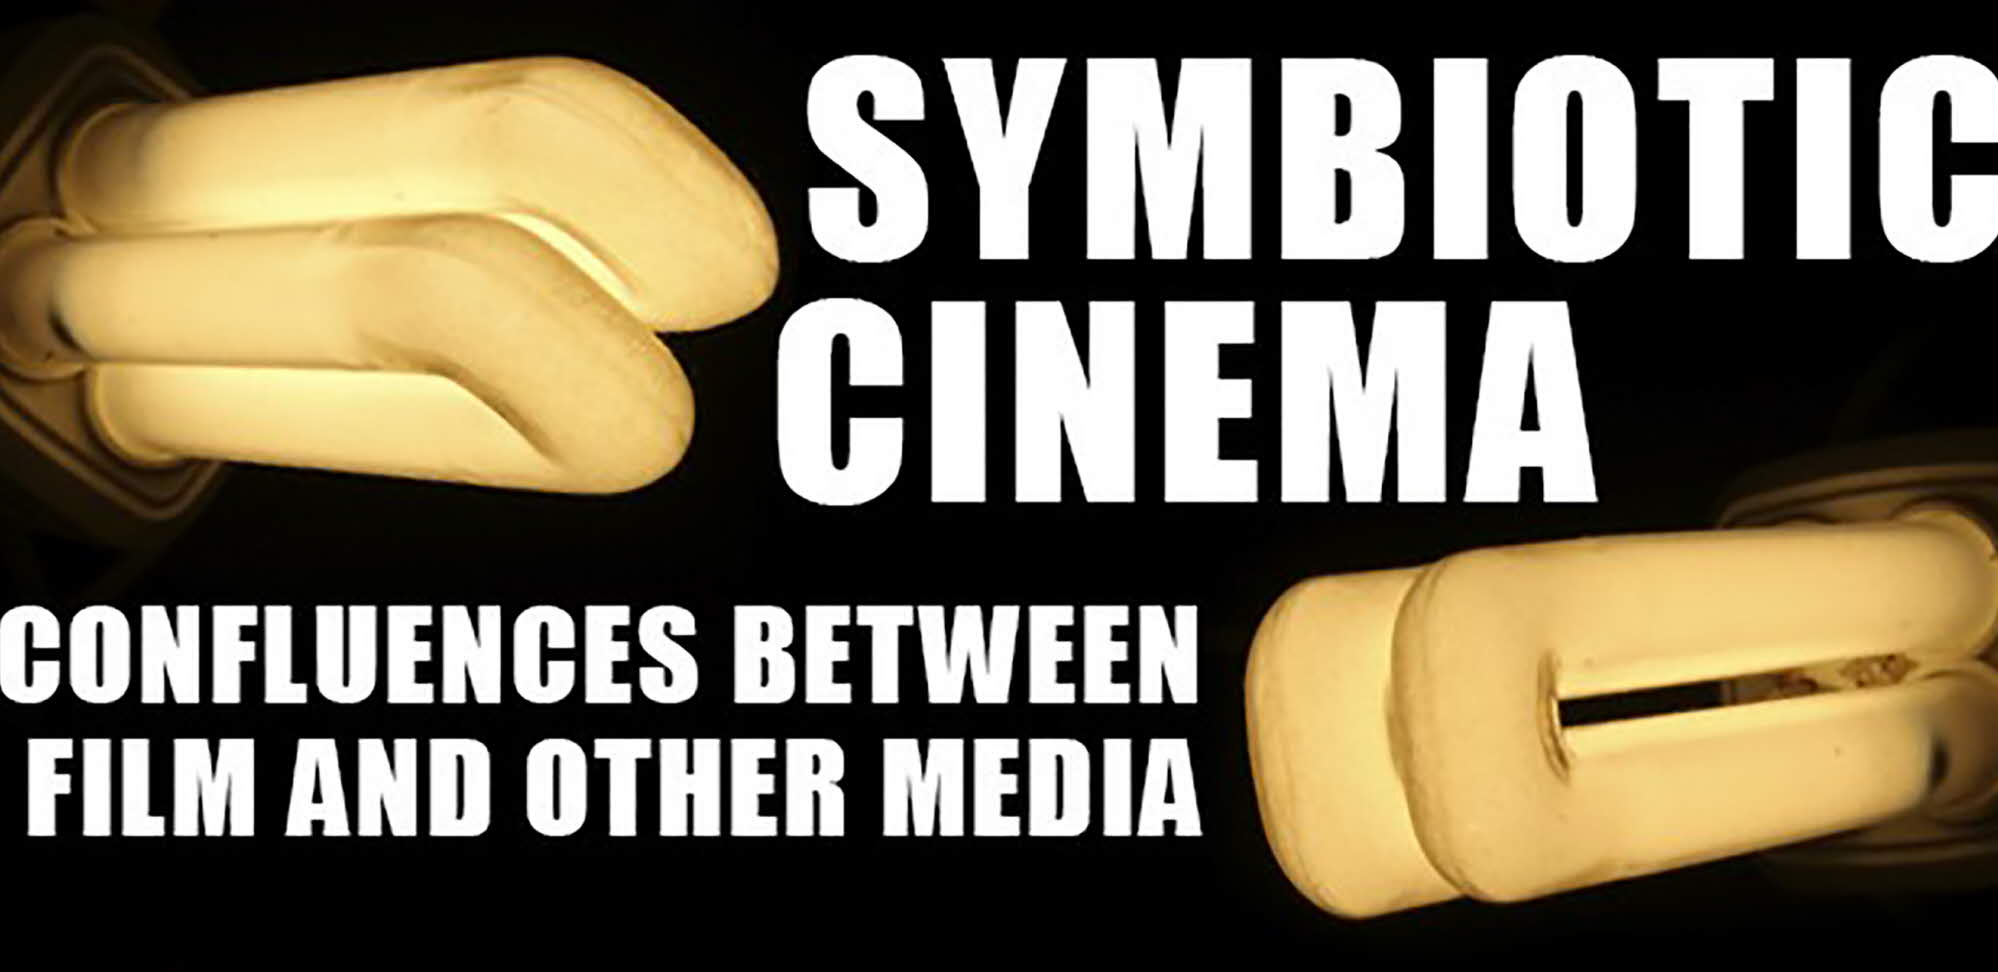 Symbiotic Cinema: Confluences between Film and Other Media